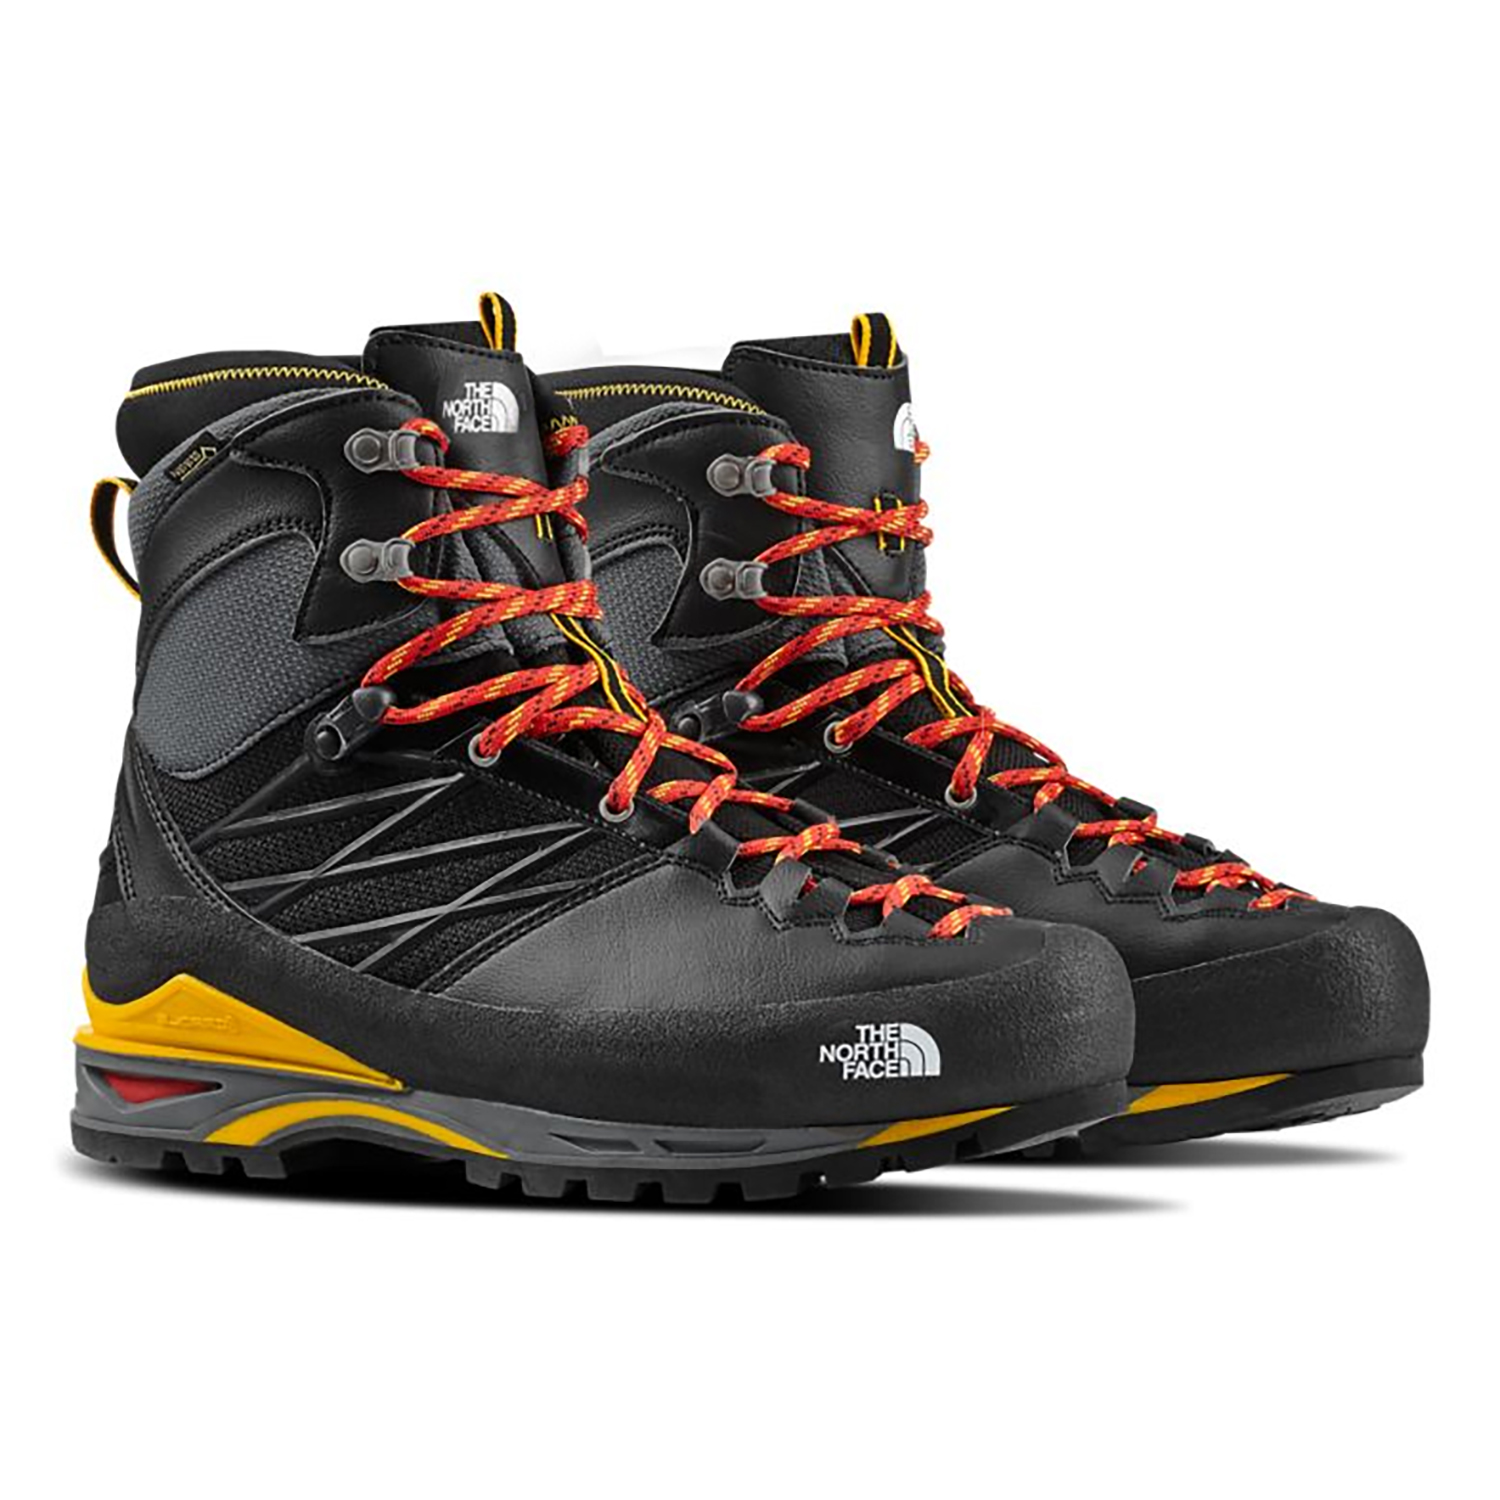 a4384d8c1adc The North Face Verto S4K GTX – The Alpine Start